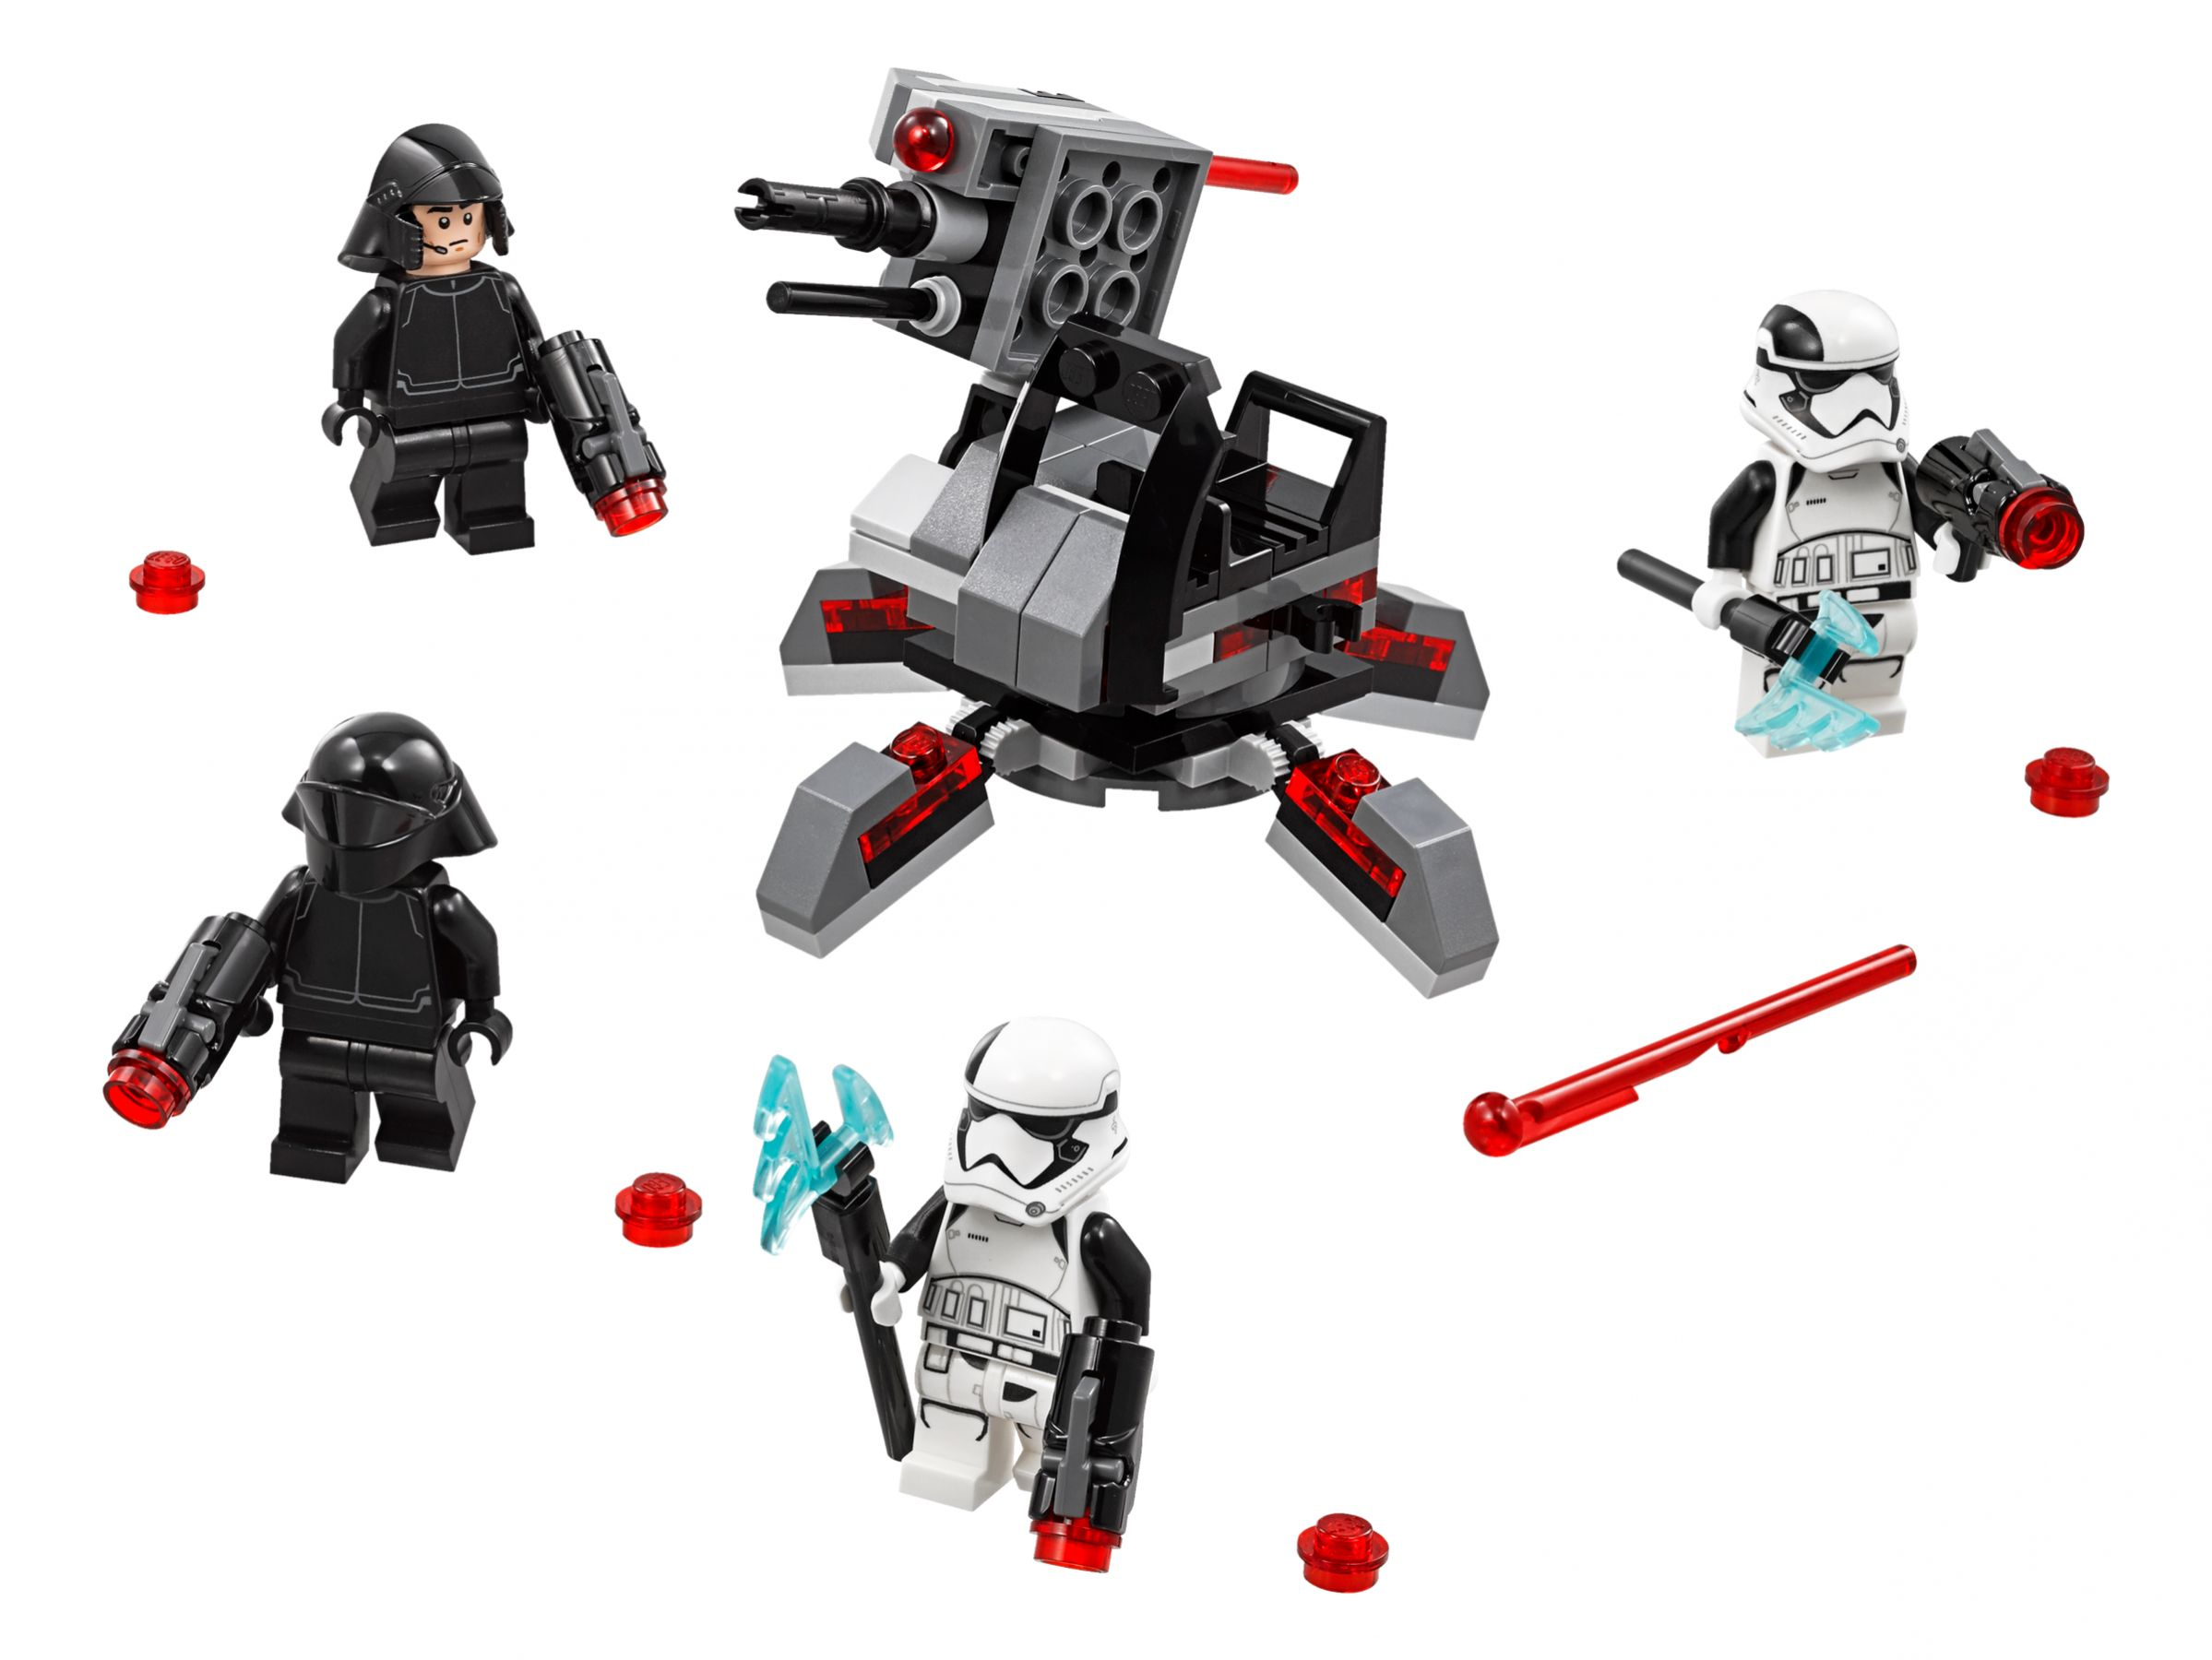 lego 75197 first order specialists battle pack star wars 2018 ab 10 41 39 gespart. Black Bedroom Furniture Sets. Home Design Ideas